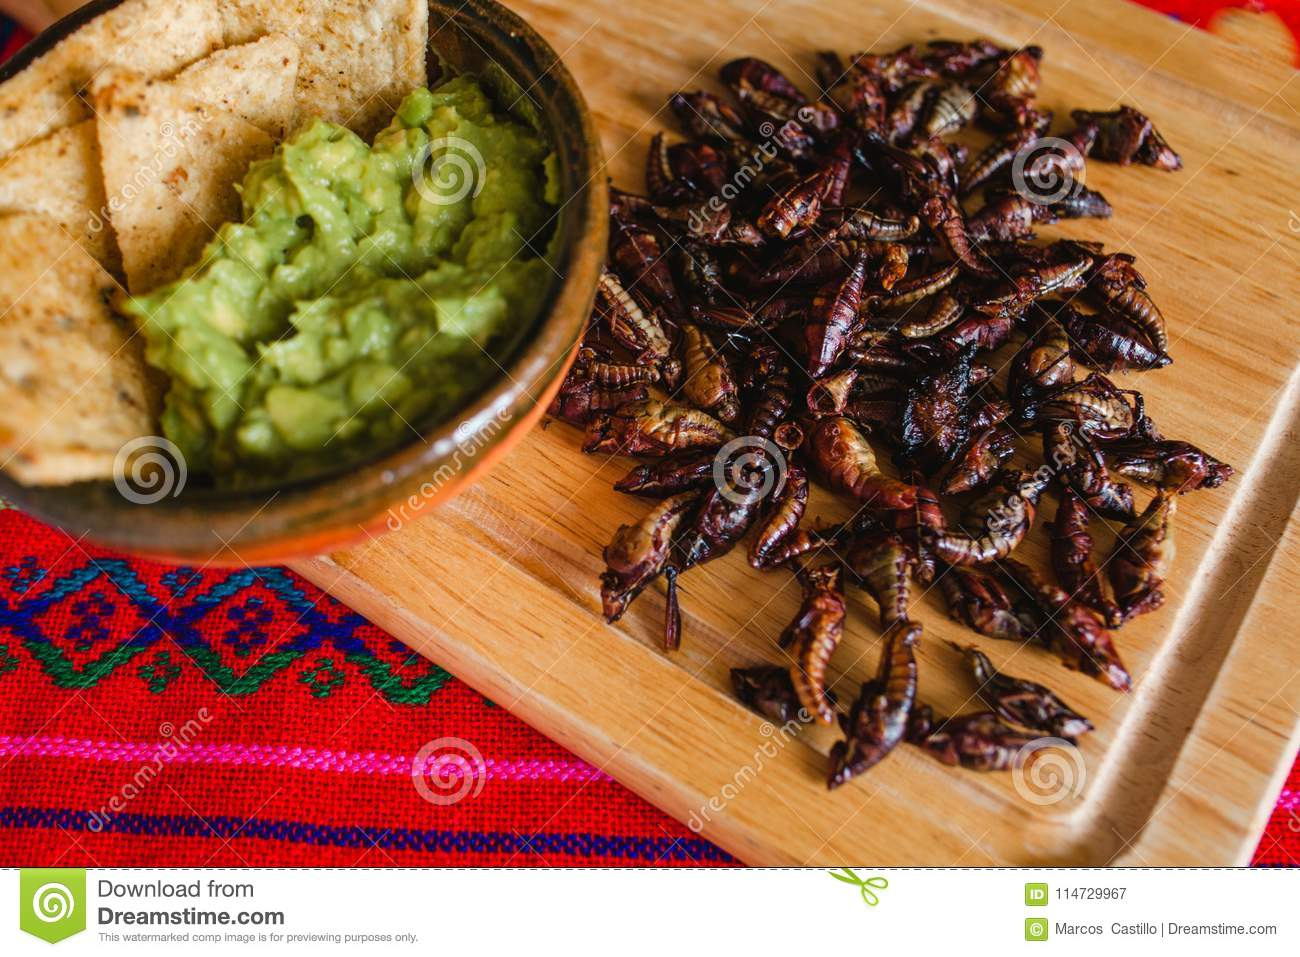 Cuisine Mexicaine Traditionnelle Chapulines Cuisine Mexicaine Traditionnelle De Casse